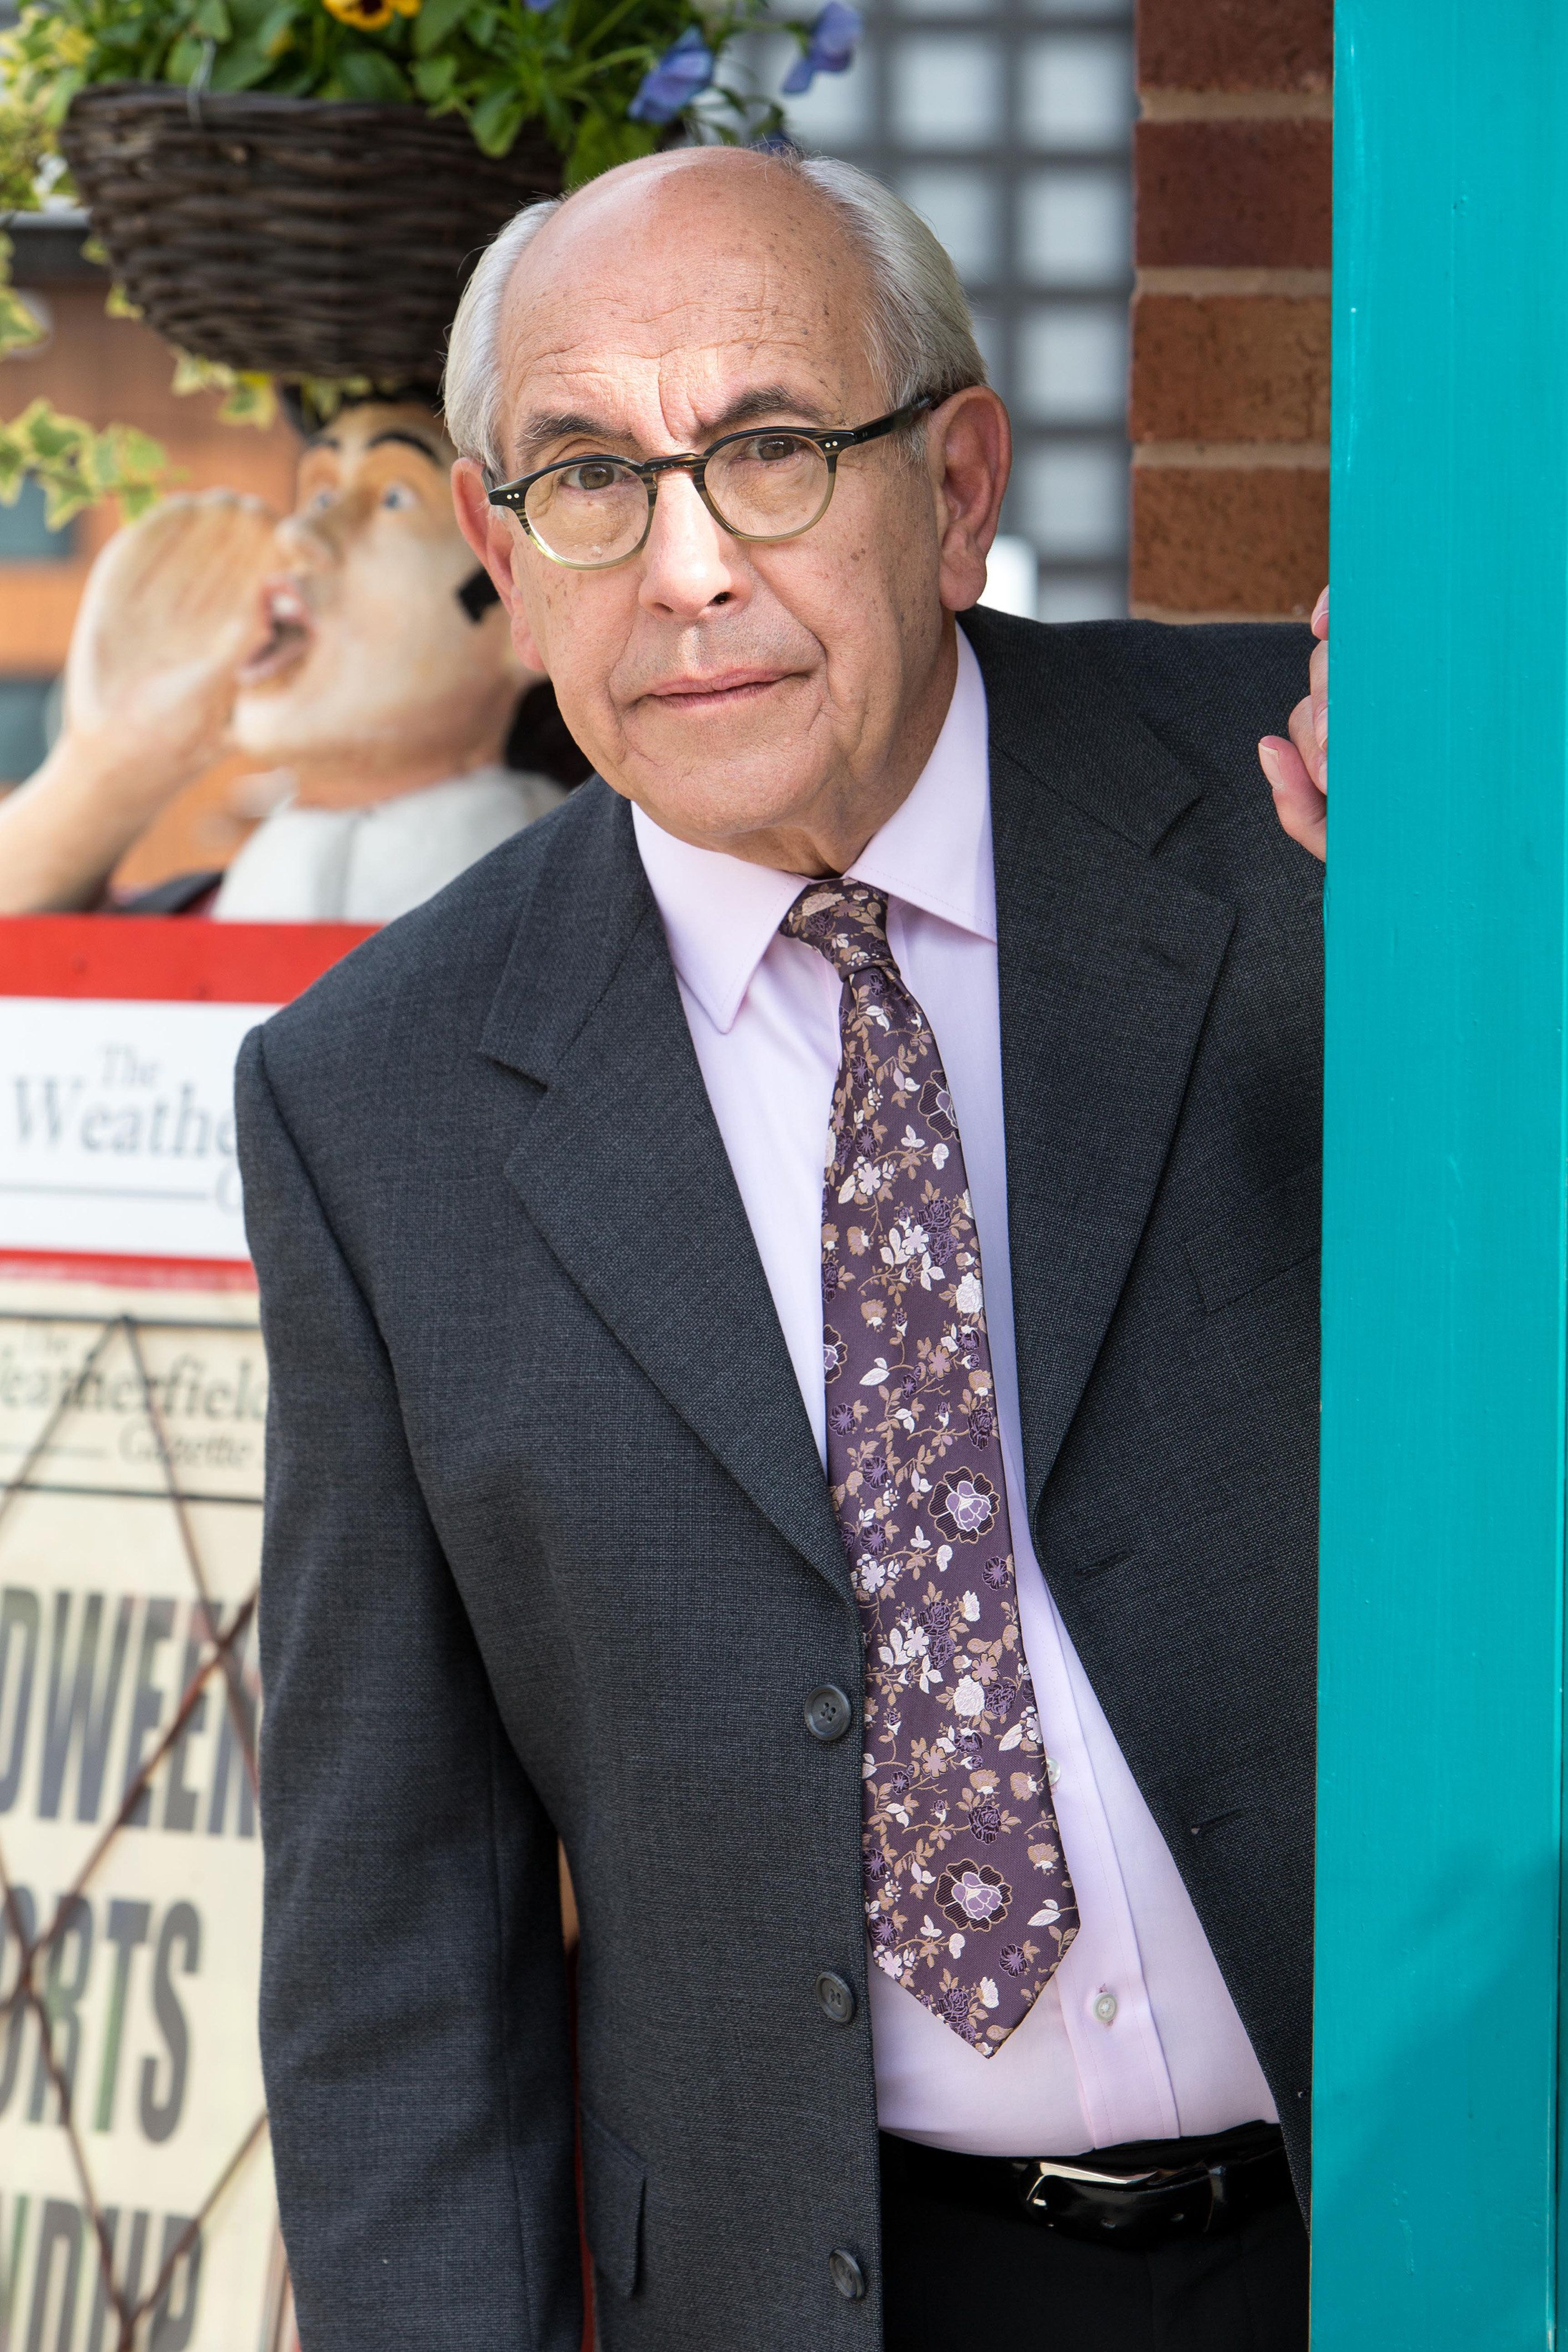 Coronation Street's Malcolm Hebden Reveals He's In Recovery After Heart